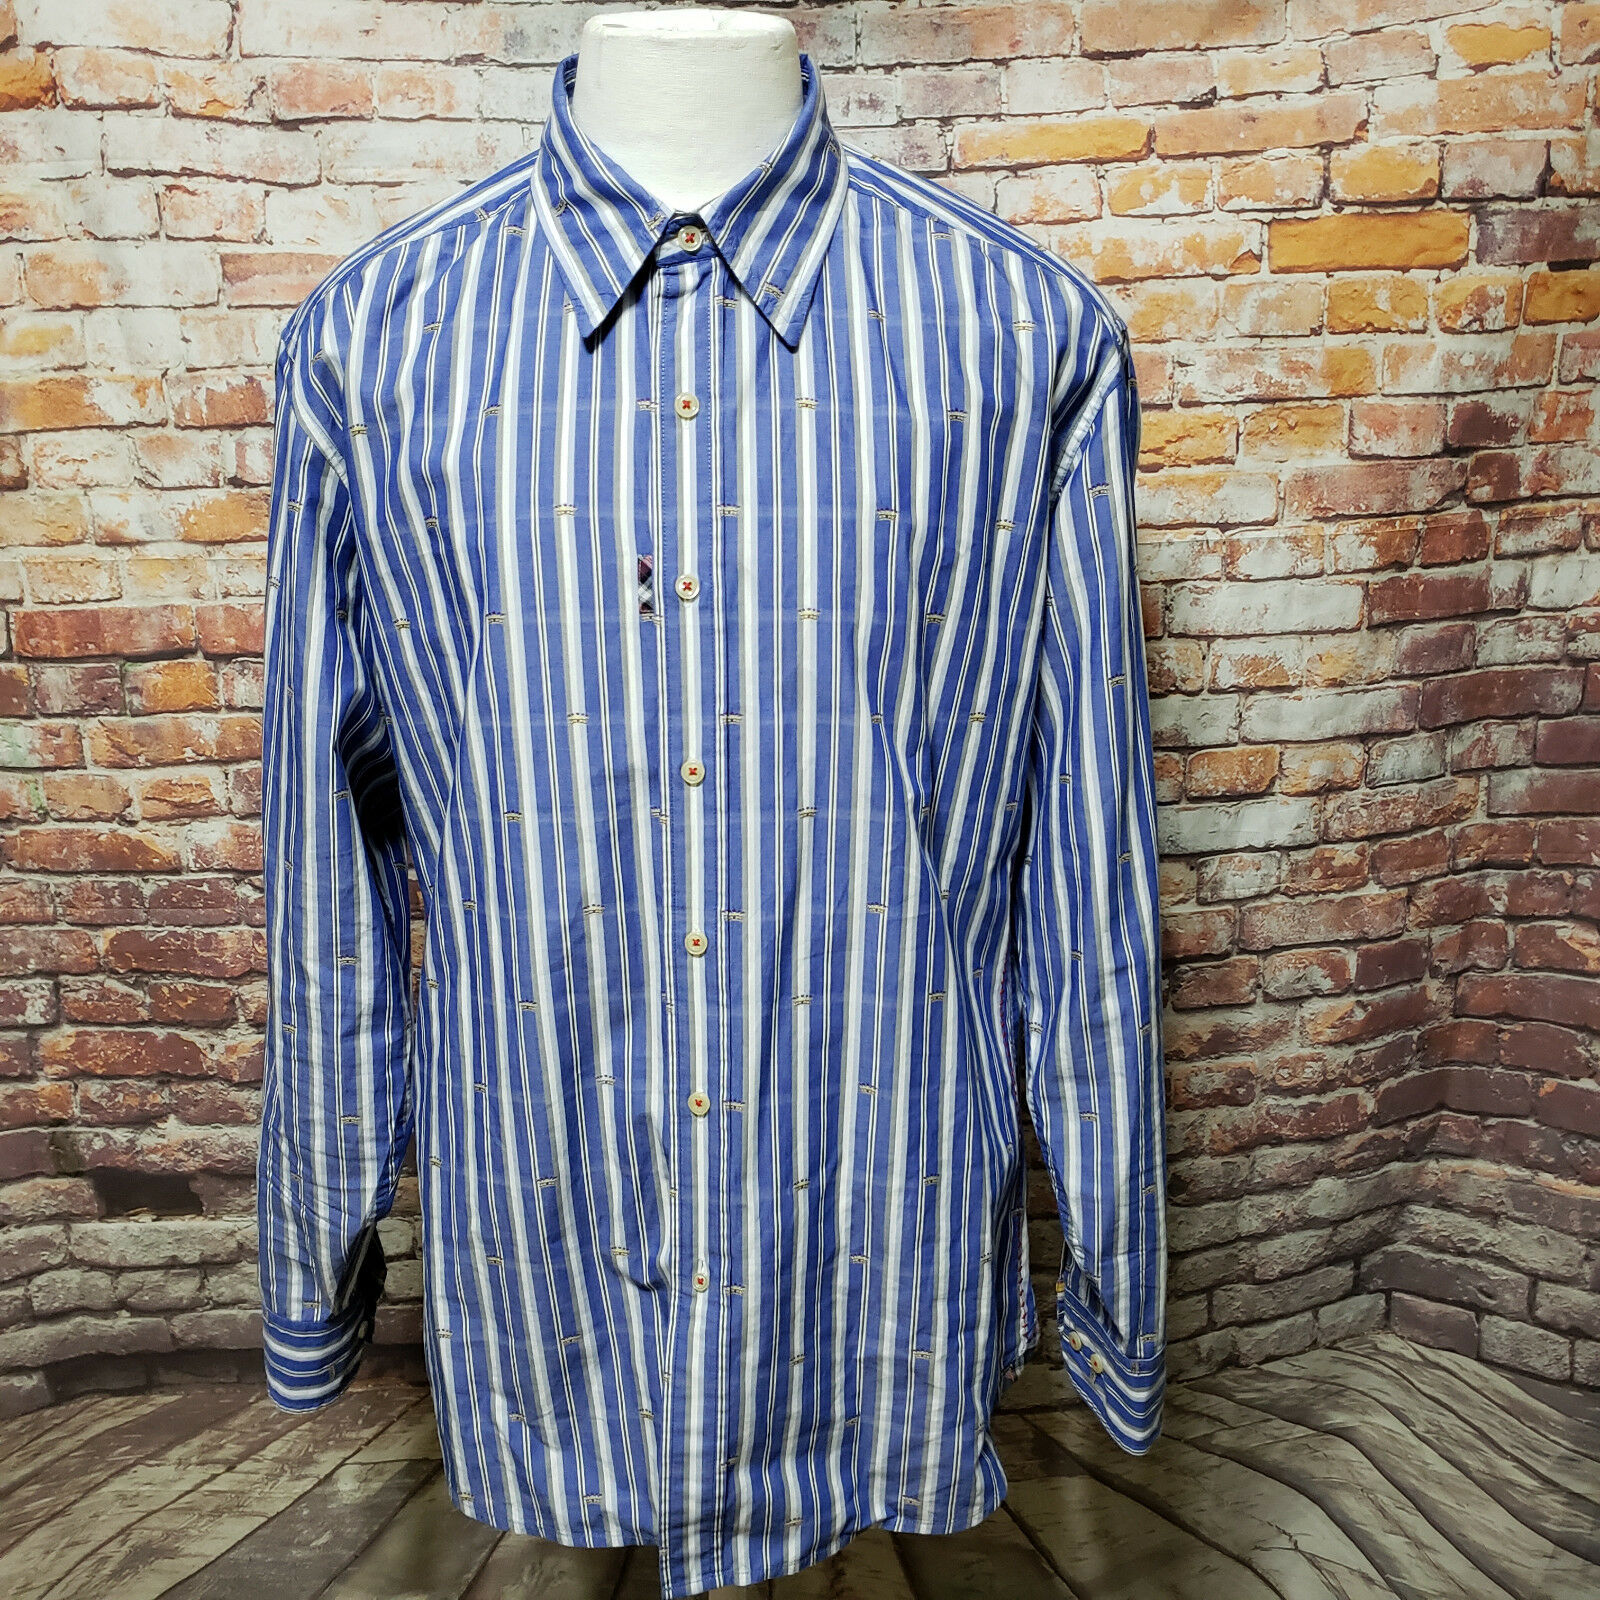 ROBERT GRAHAM blueE STRIPED COTTON FLIP CUFFS LONG SLEEVE SHIRT SIZE L A41-22